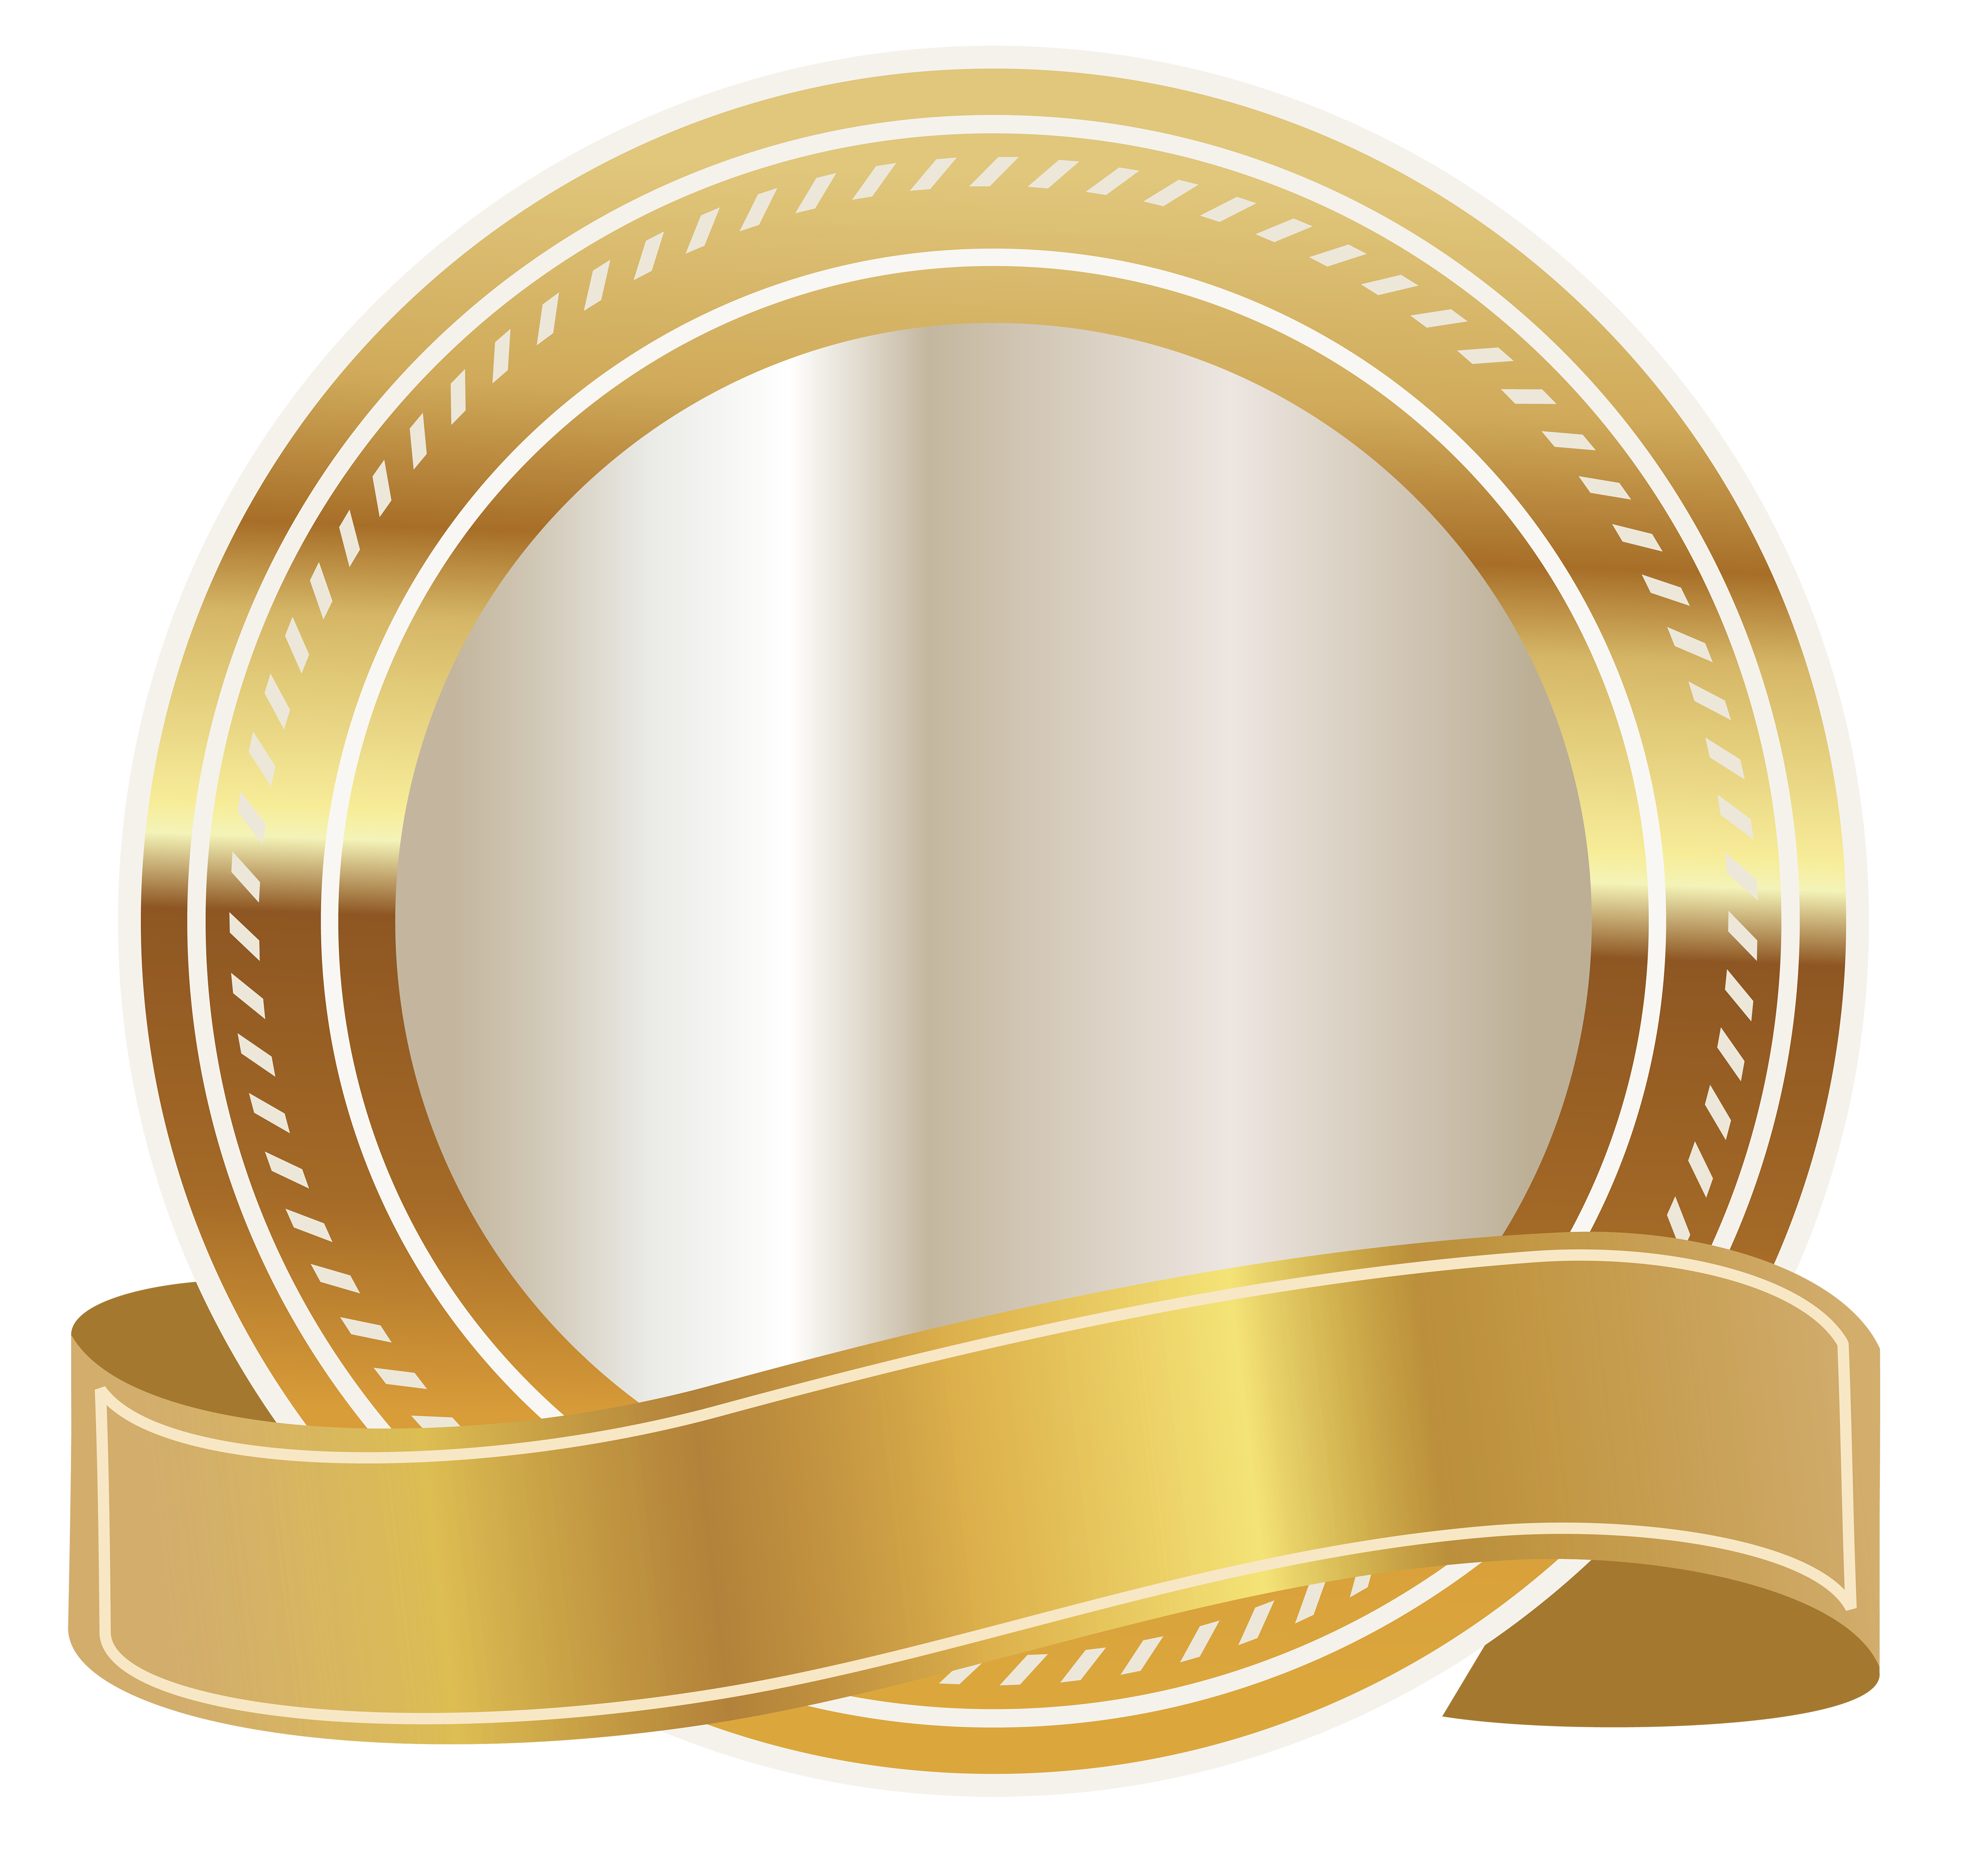 picture free stock Gold Seal with Gold Ribbon PNG Clipart Image